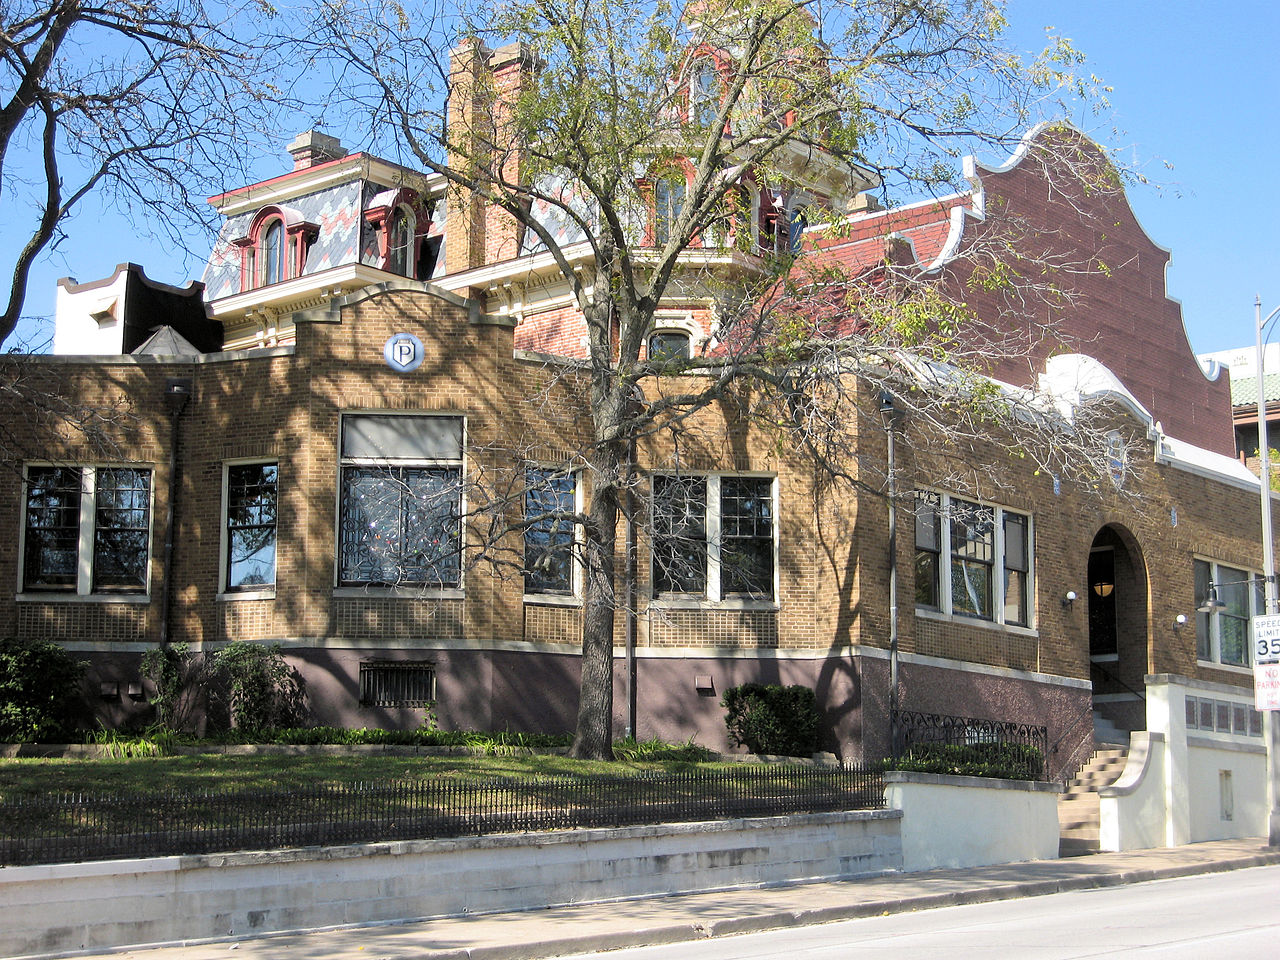 The Palmer House was originally built in 1874 and was the home of developer of chiropractic medicine B.J. Palmer.